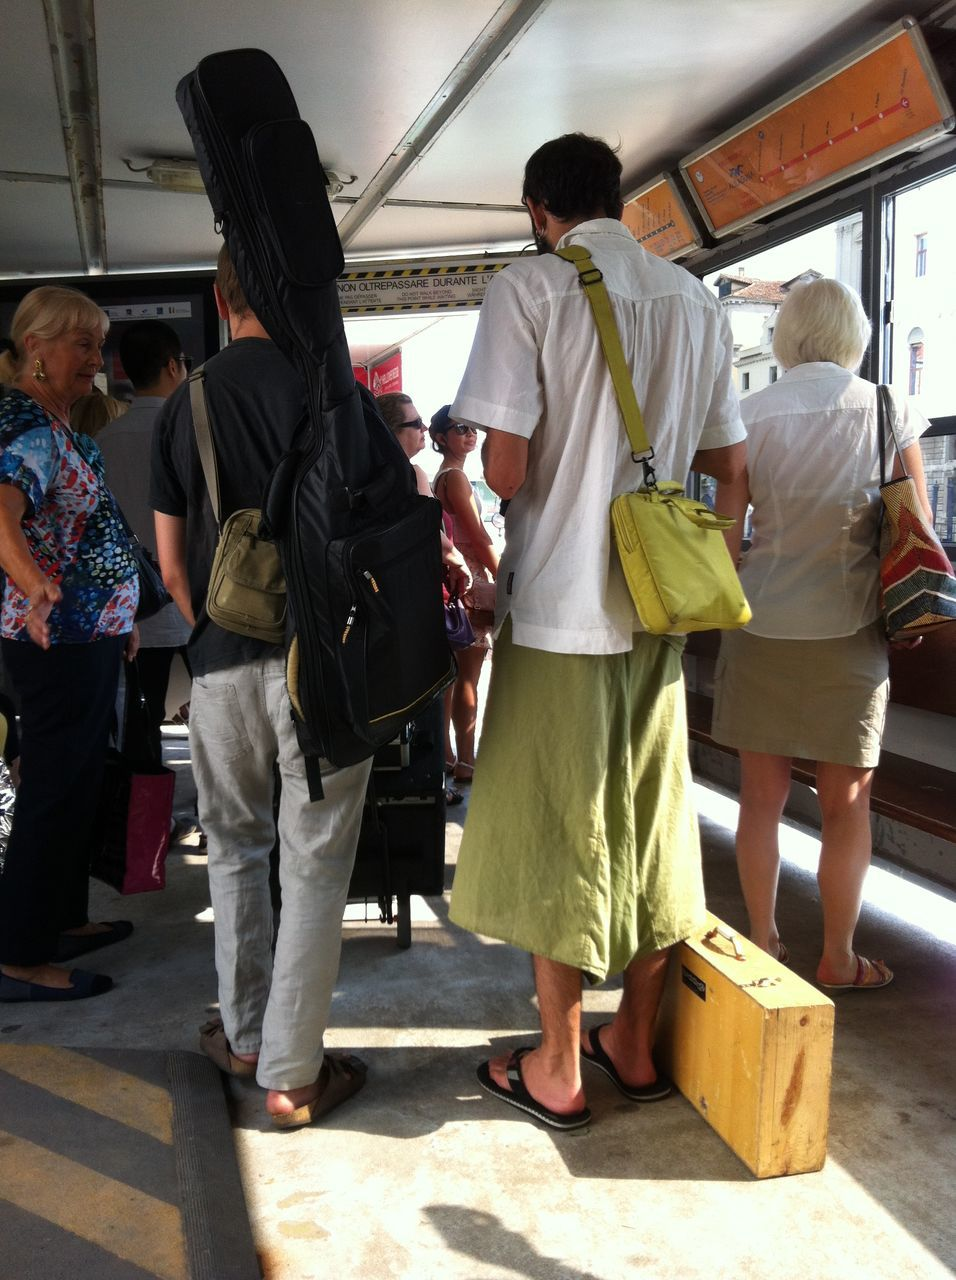 Rear View Of People With Luggage